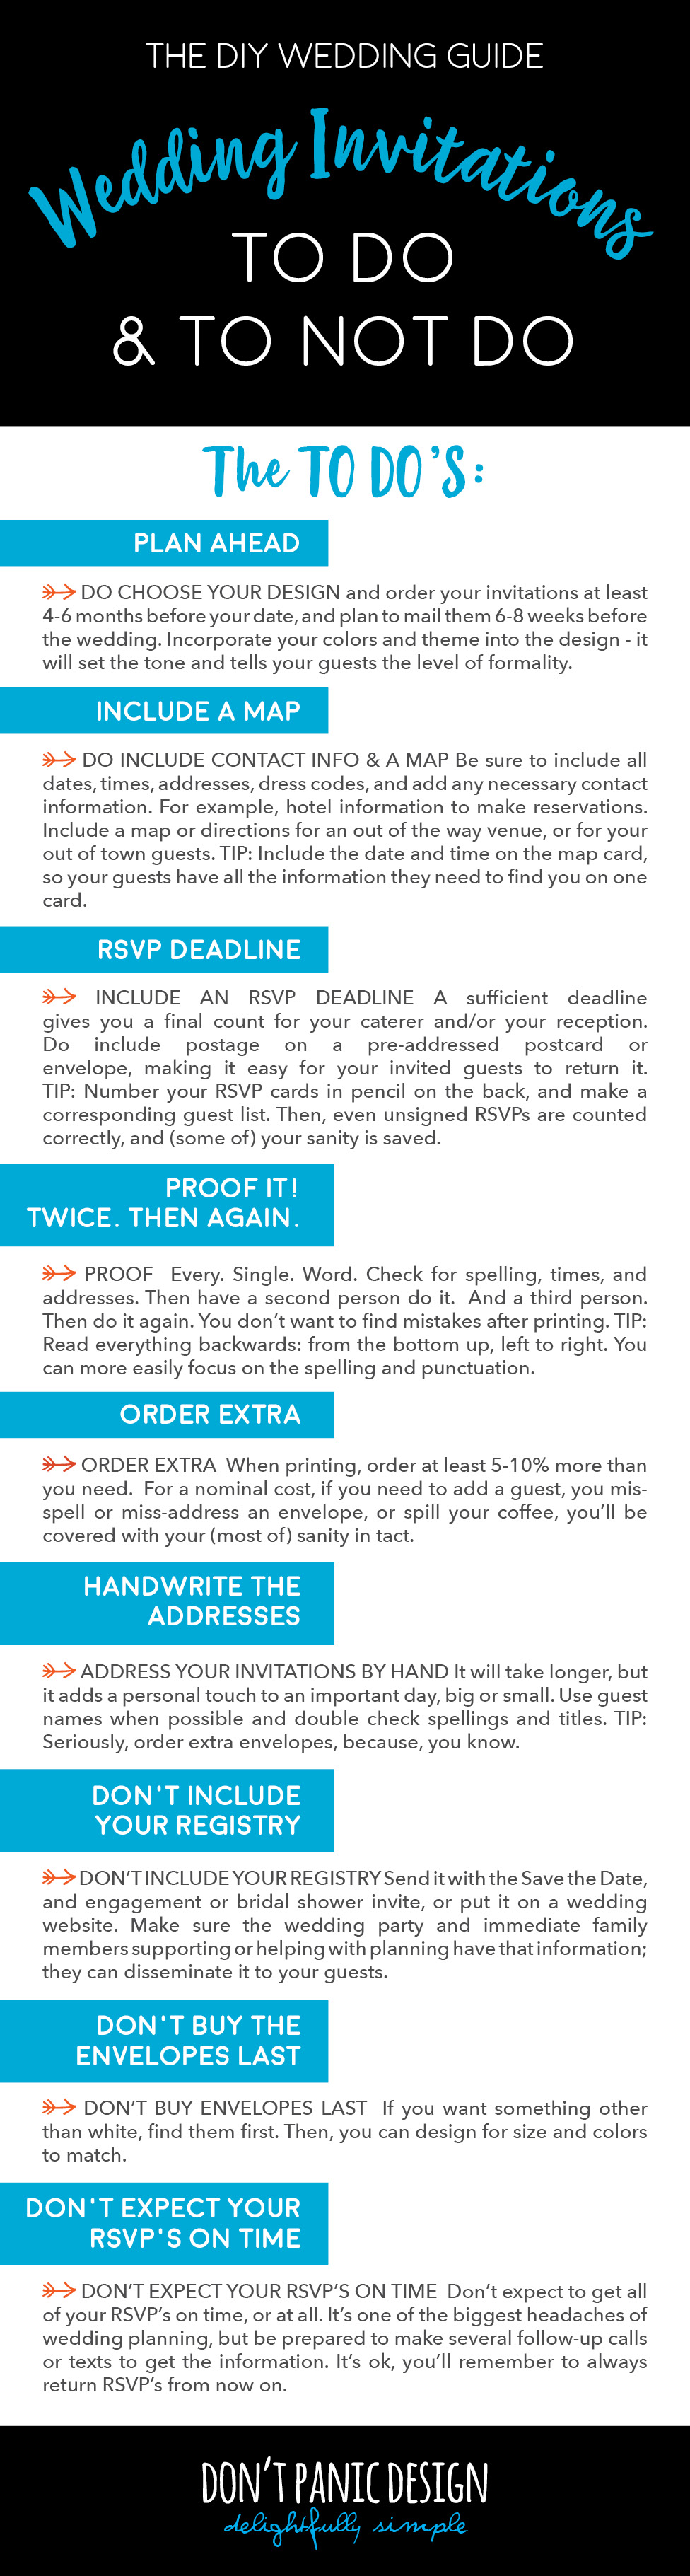 Essential tips if you are wedding planning or DIY-ing your wedding ...